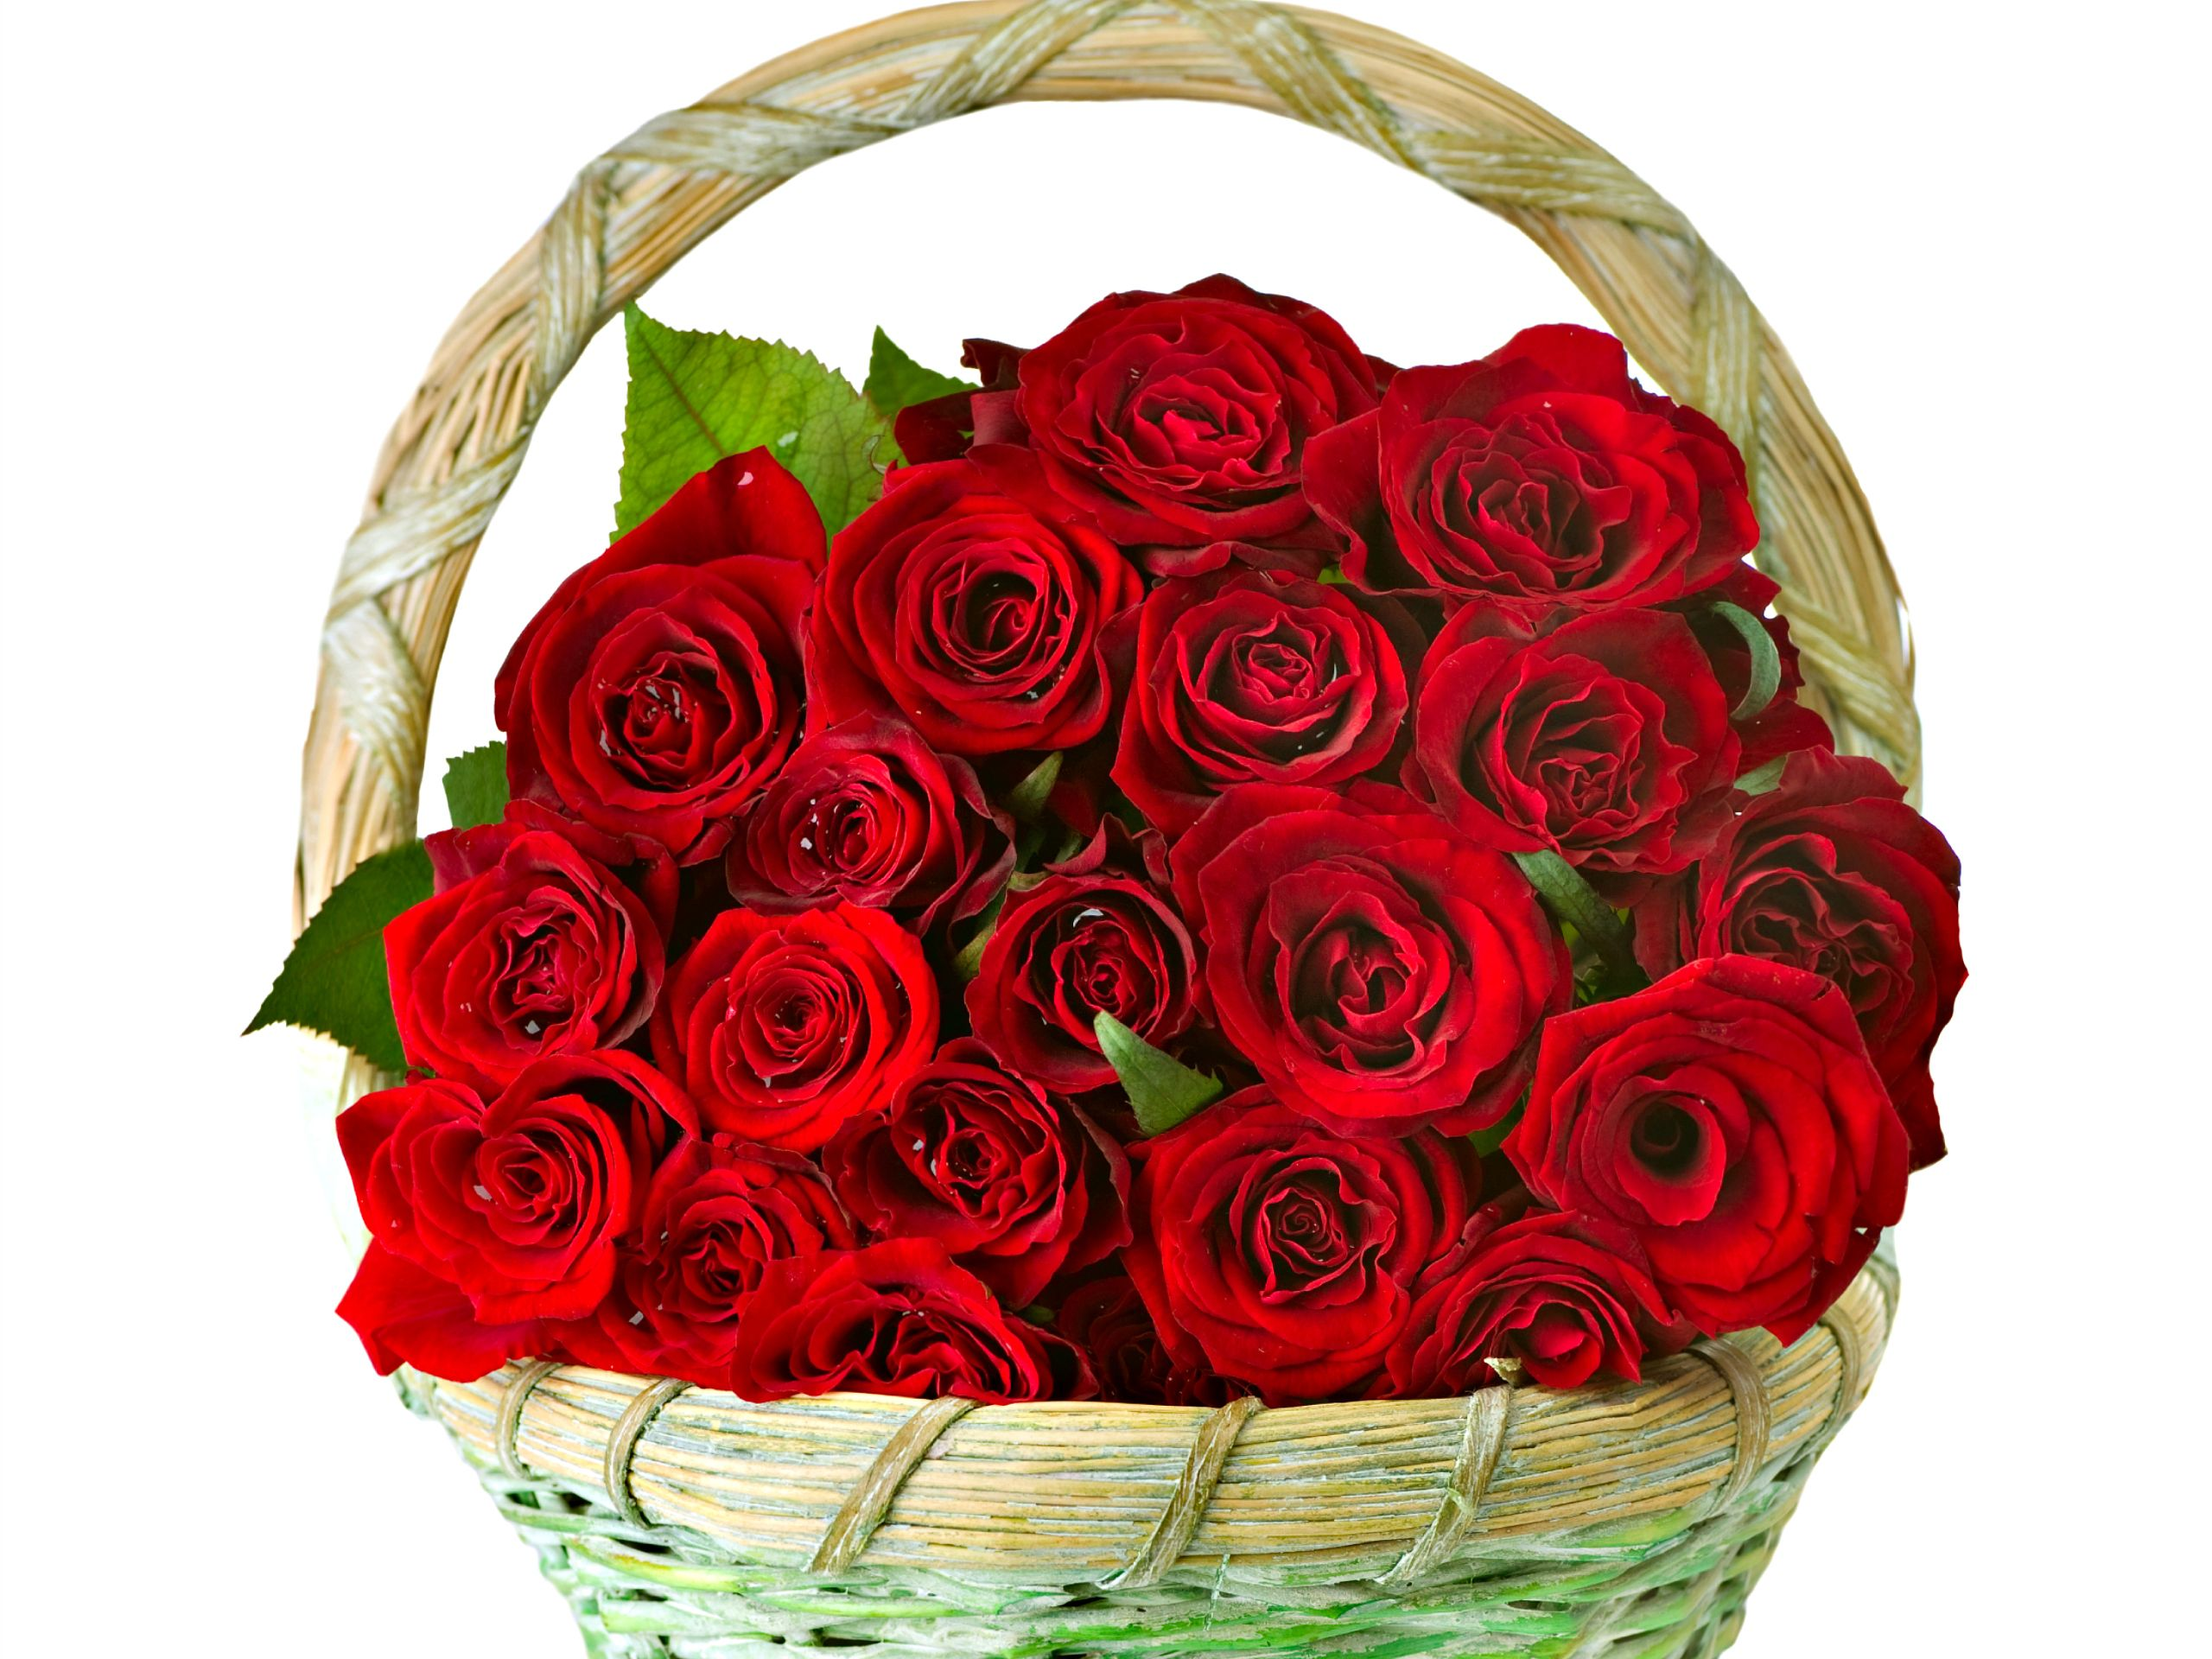 Lilies Vs Roses Which Should You Send Out Hd Flower Wallpaper Beautiful Red Roses Images Basket Flower Arrangements